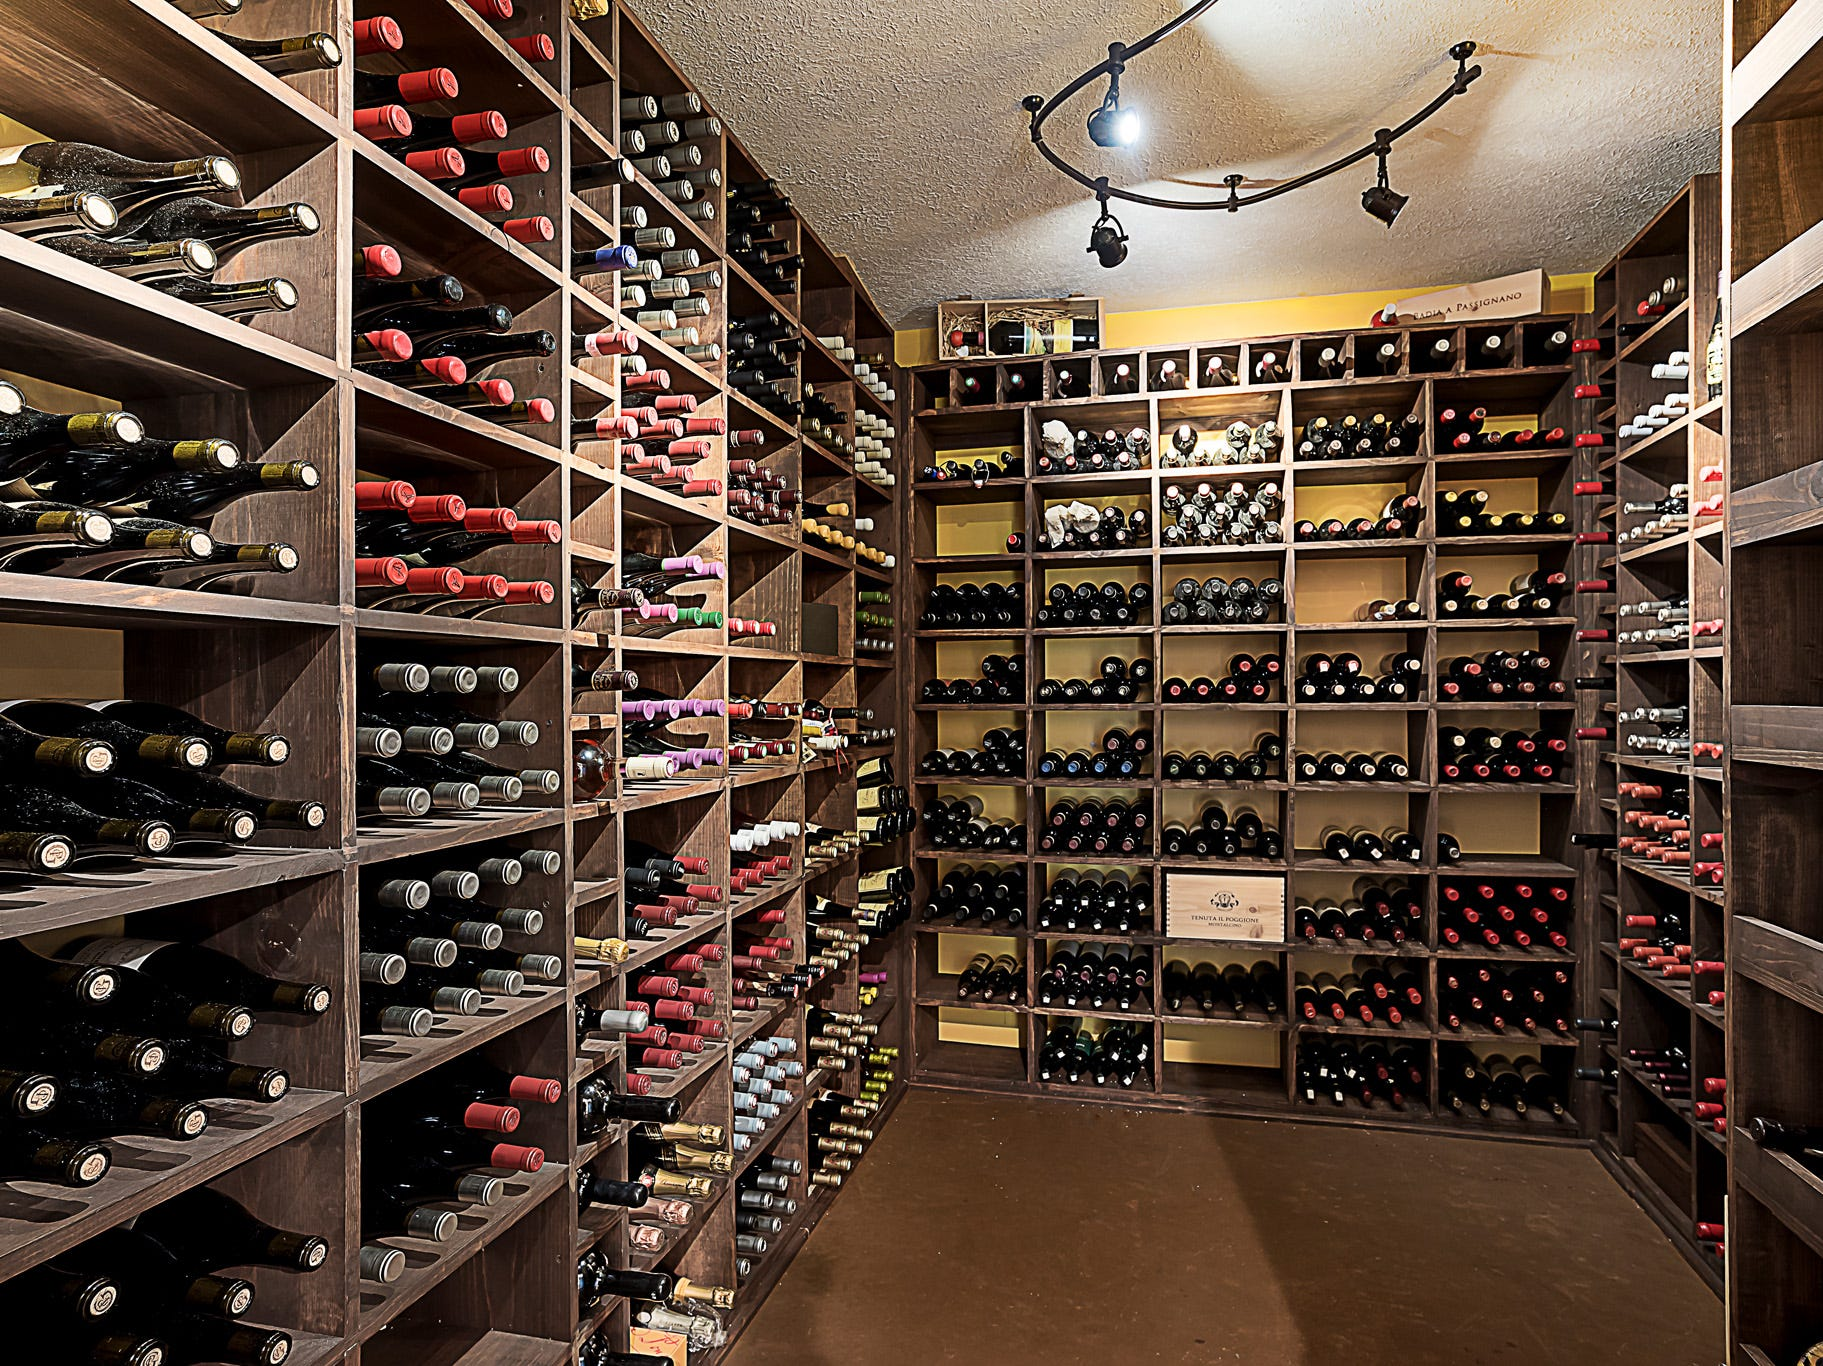 A wine cellar in the basement is climate controlled and holds up to 1,200 wine bottles.